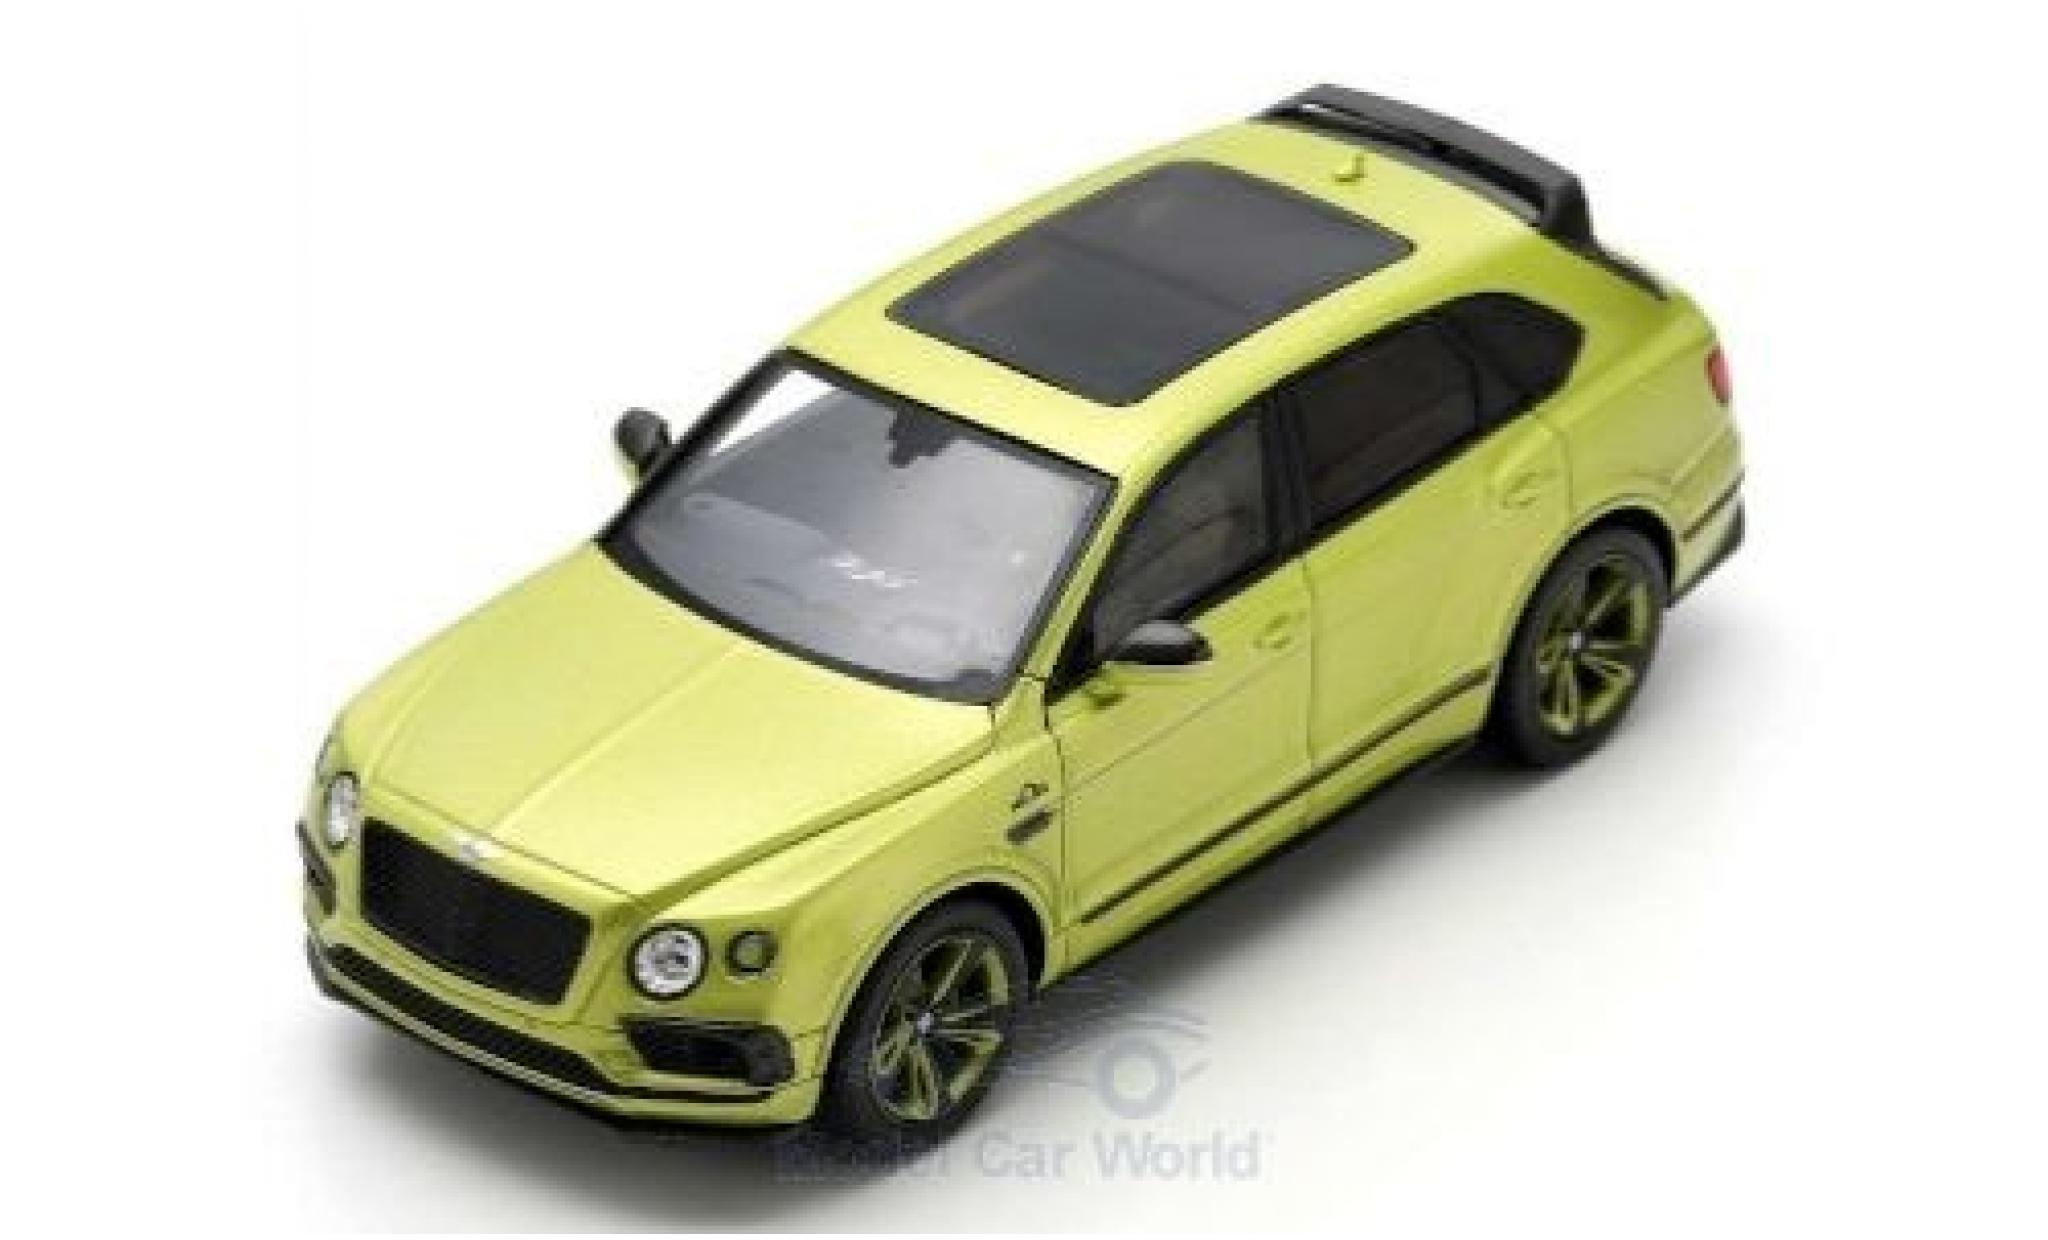 Bentley Bentayga 1/43 Spark Pikes Peak Limited Edition mettalic grün 2018 by Mulliner